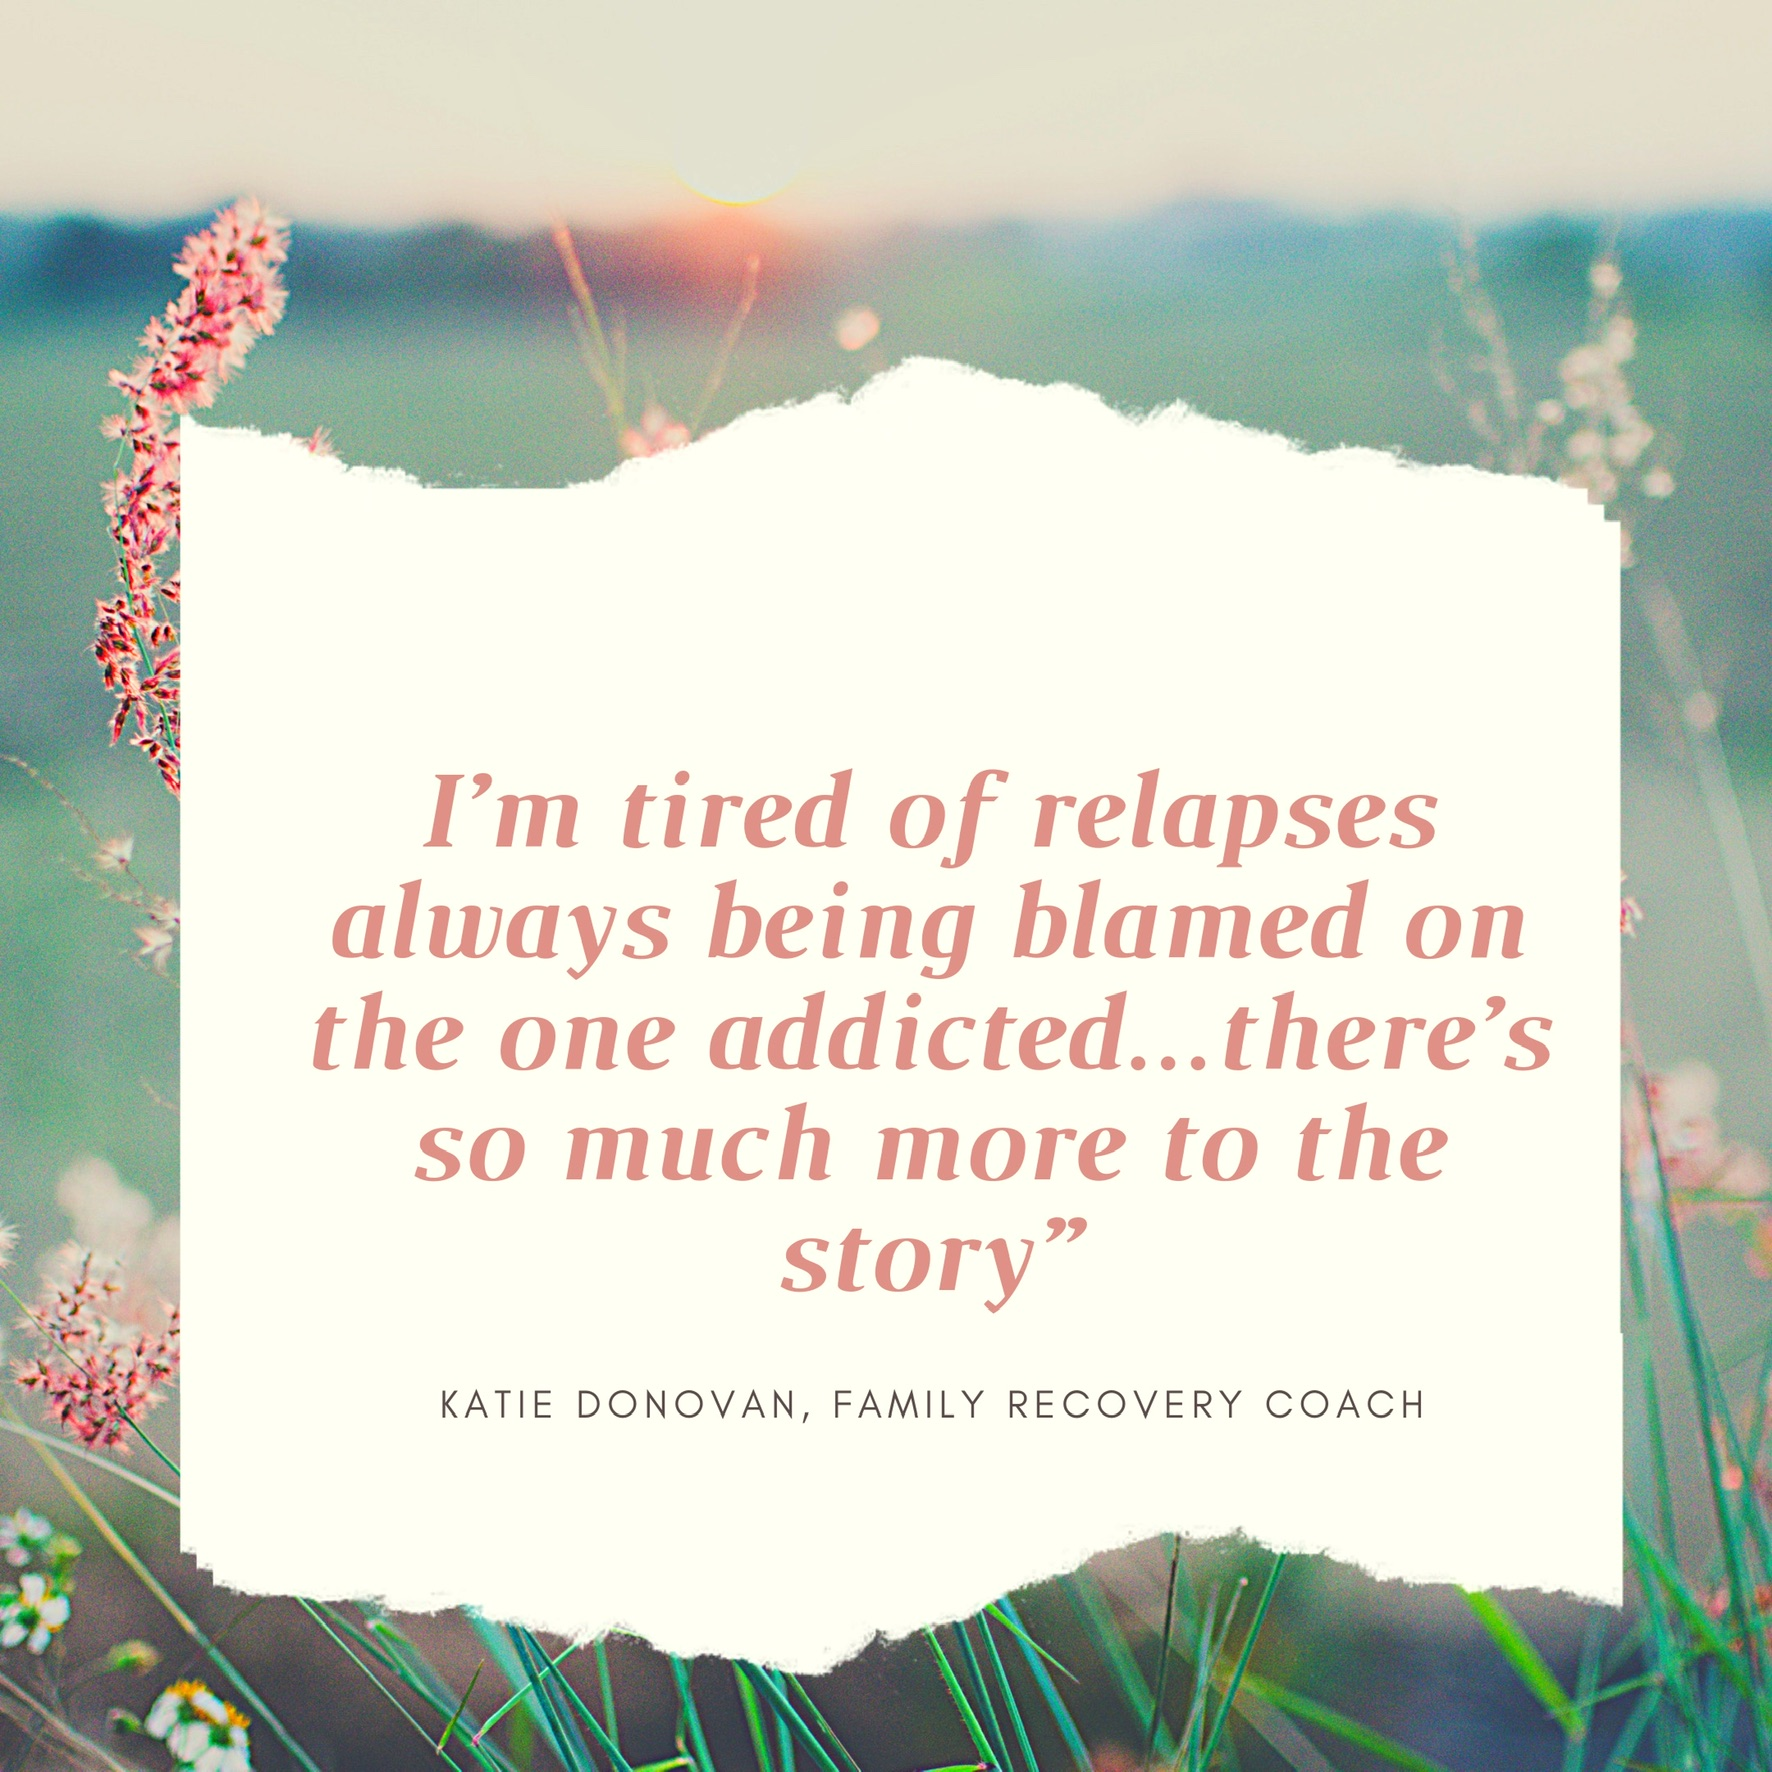 Stop Blaming Relapses Solely On The One Addicted...There Could Be So Much More To The Story - Katie Donovan